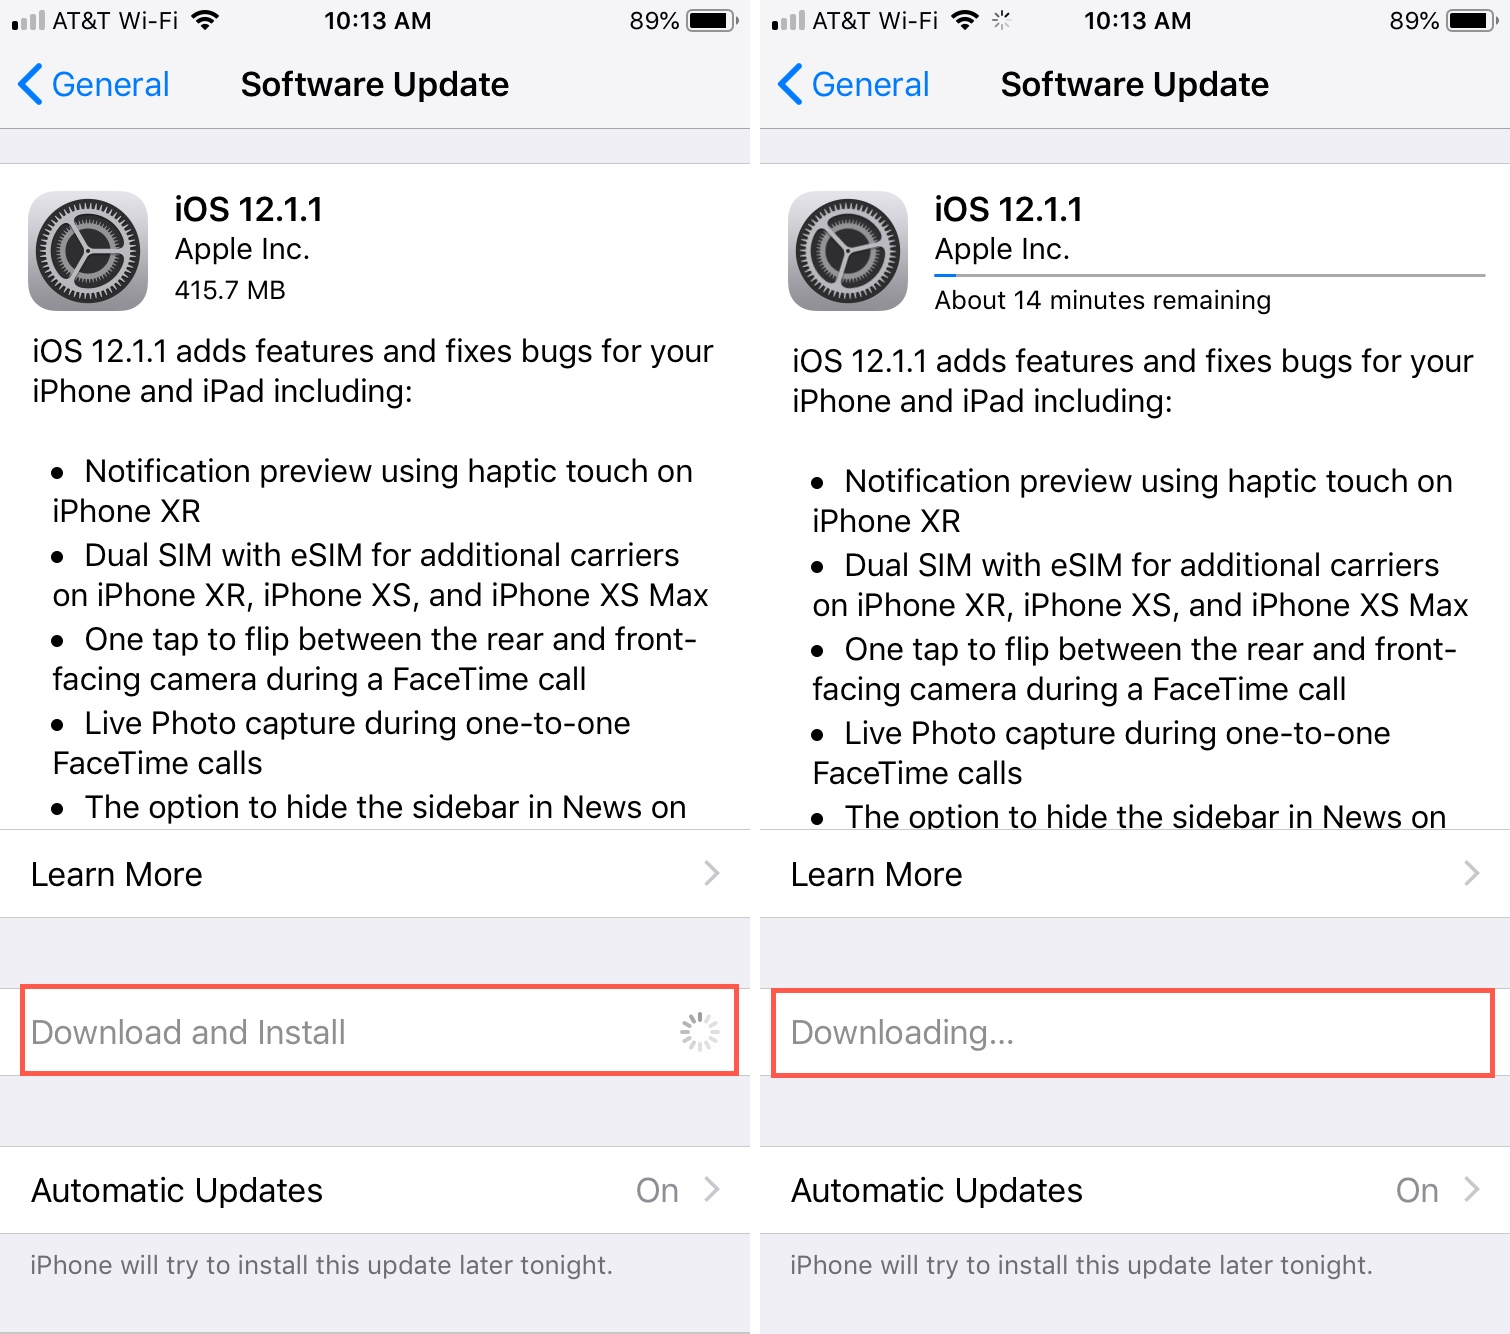 How to stop an iOS update that has already started downloading